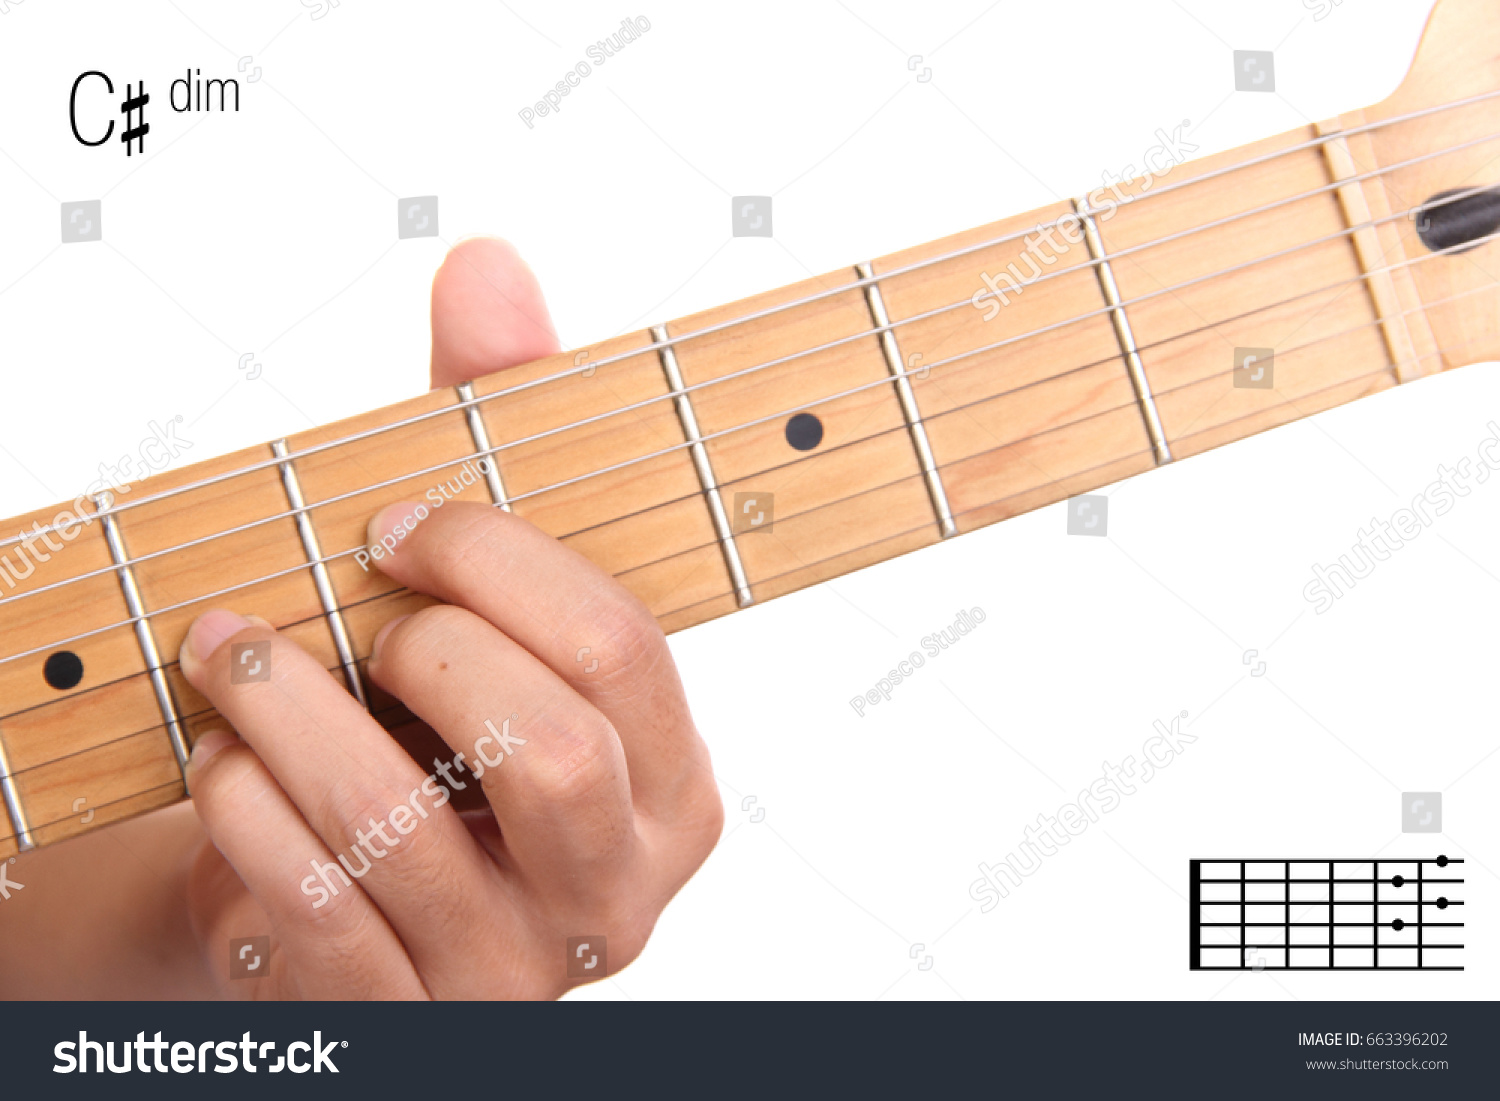 Cdim Advanced Guitar Keys Series Closeup Stock Photo Edit Now